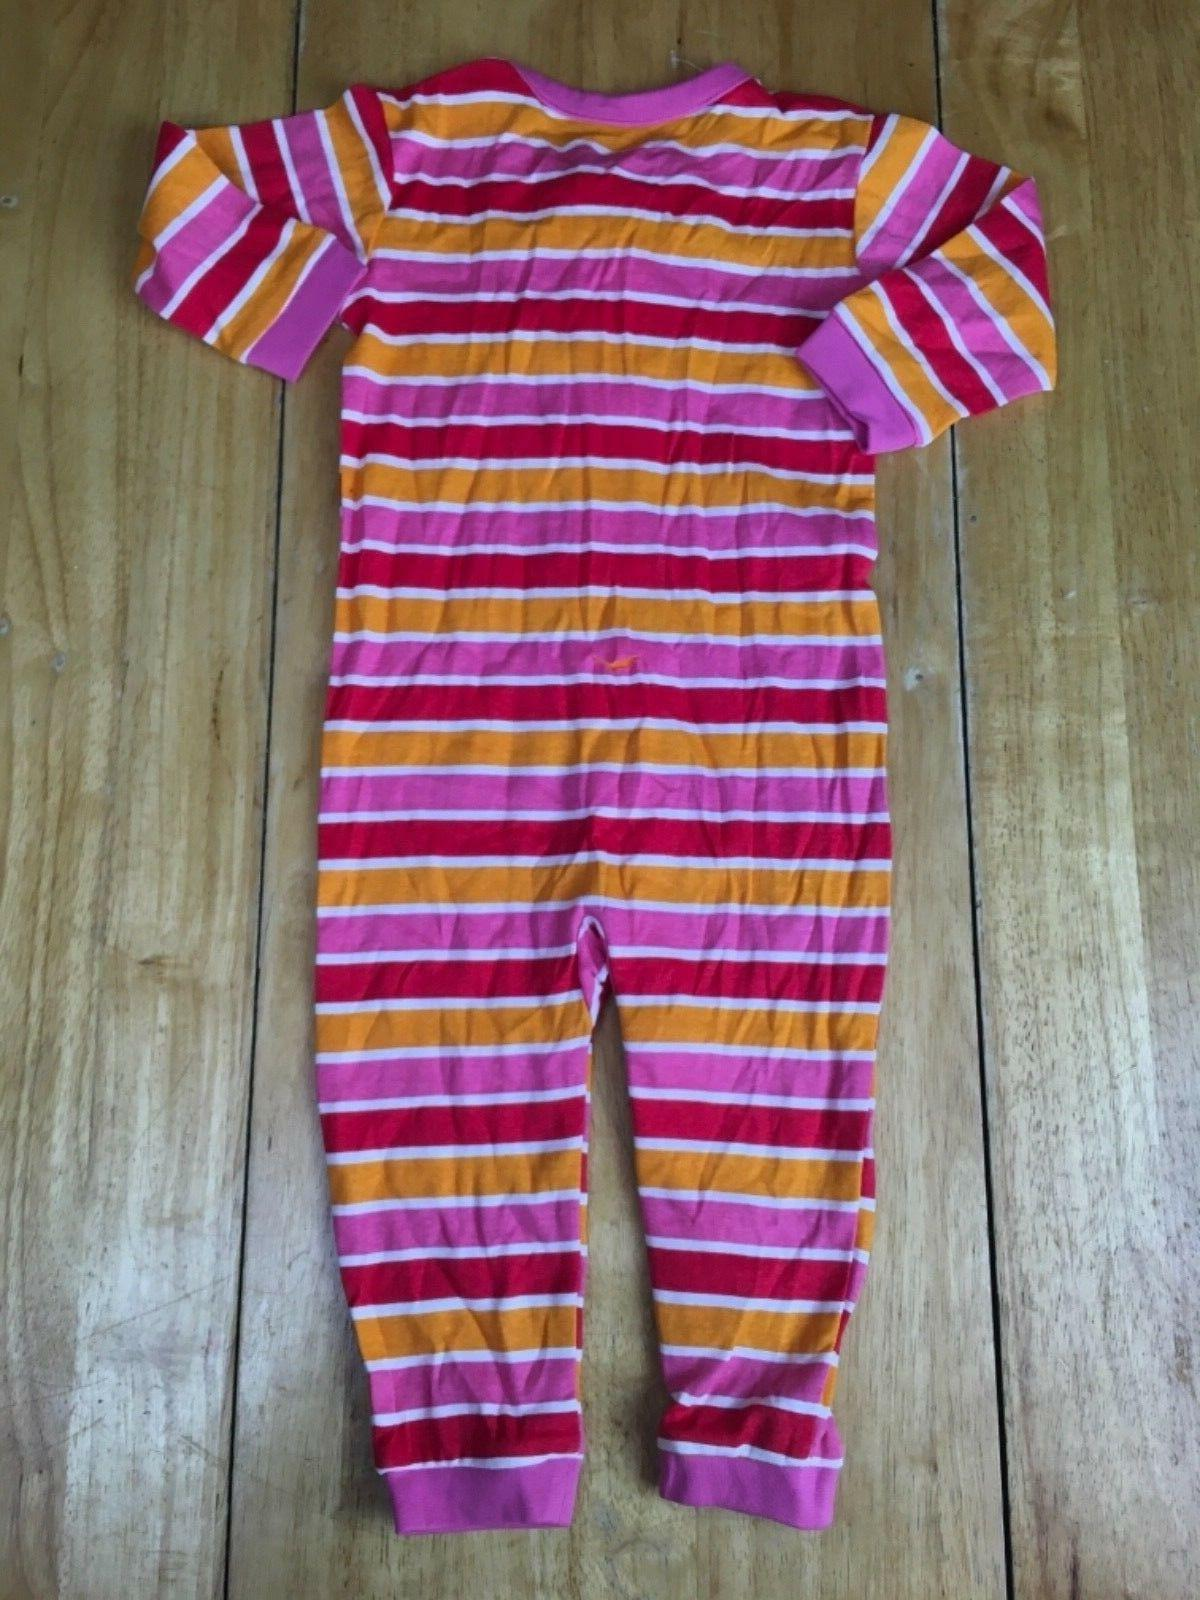 The Zipup Piece Sleepwear Pajamas Size